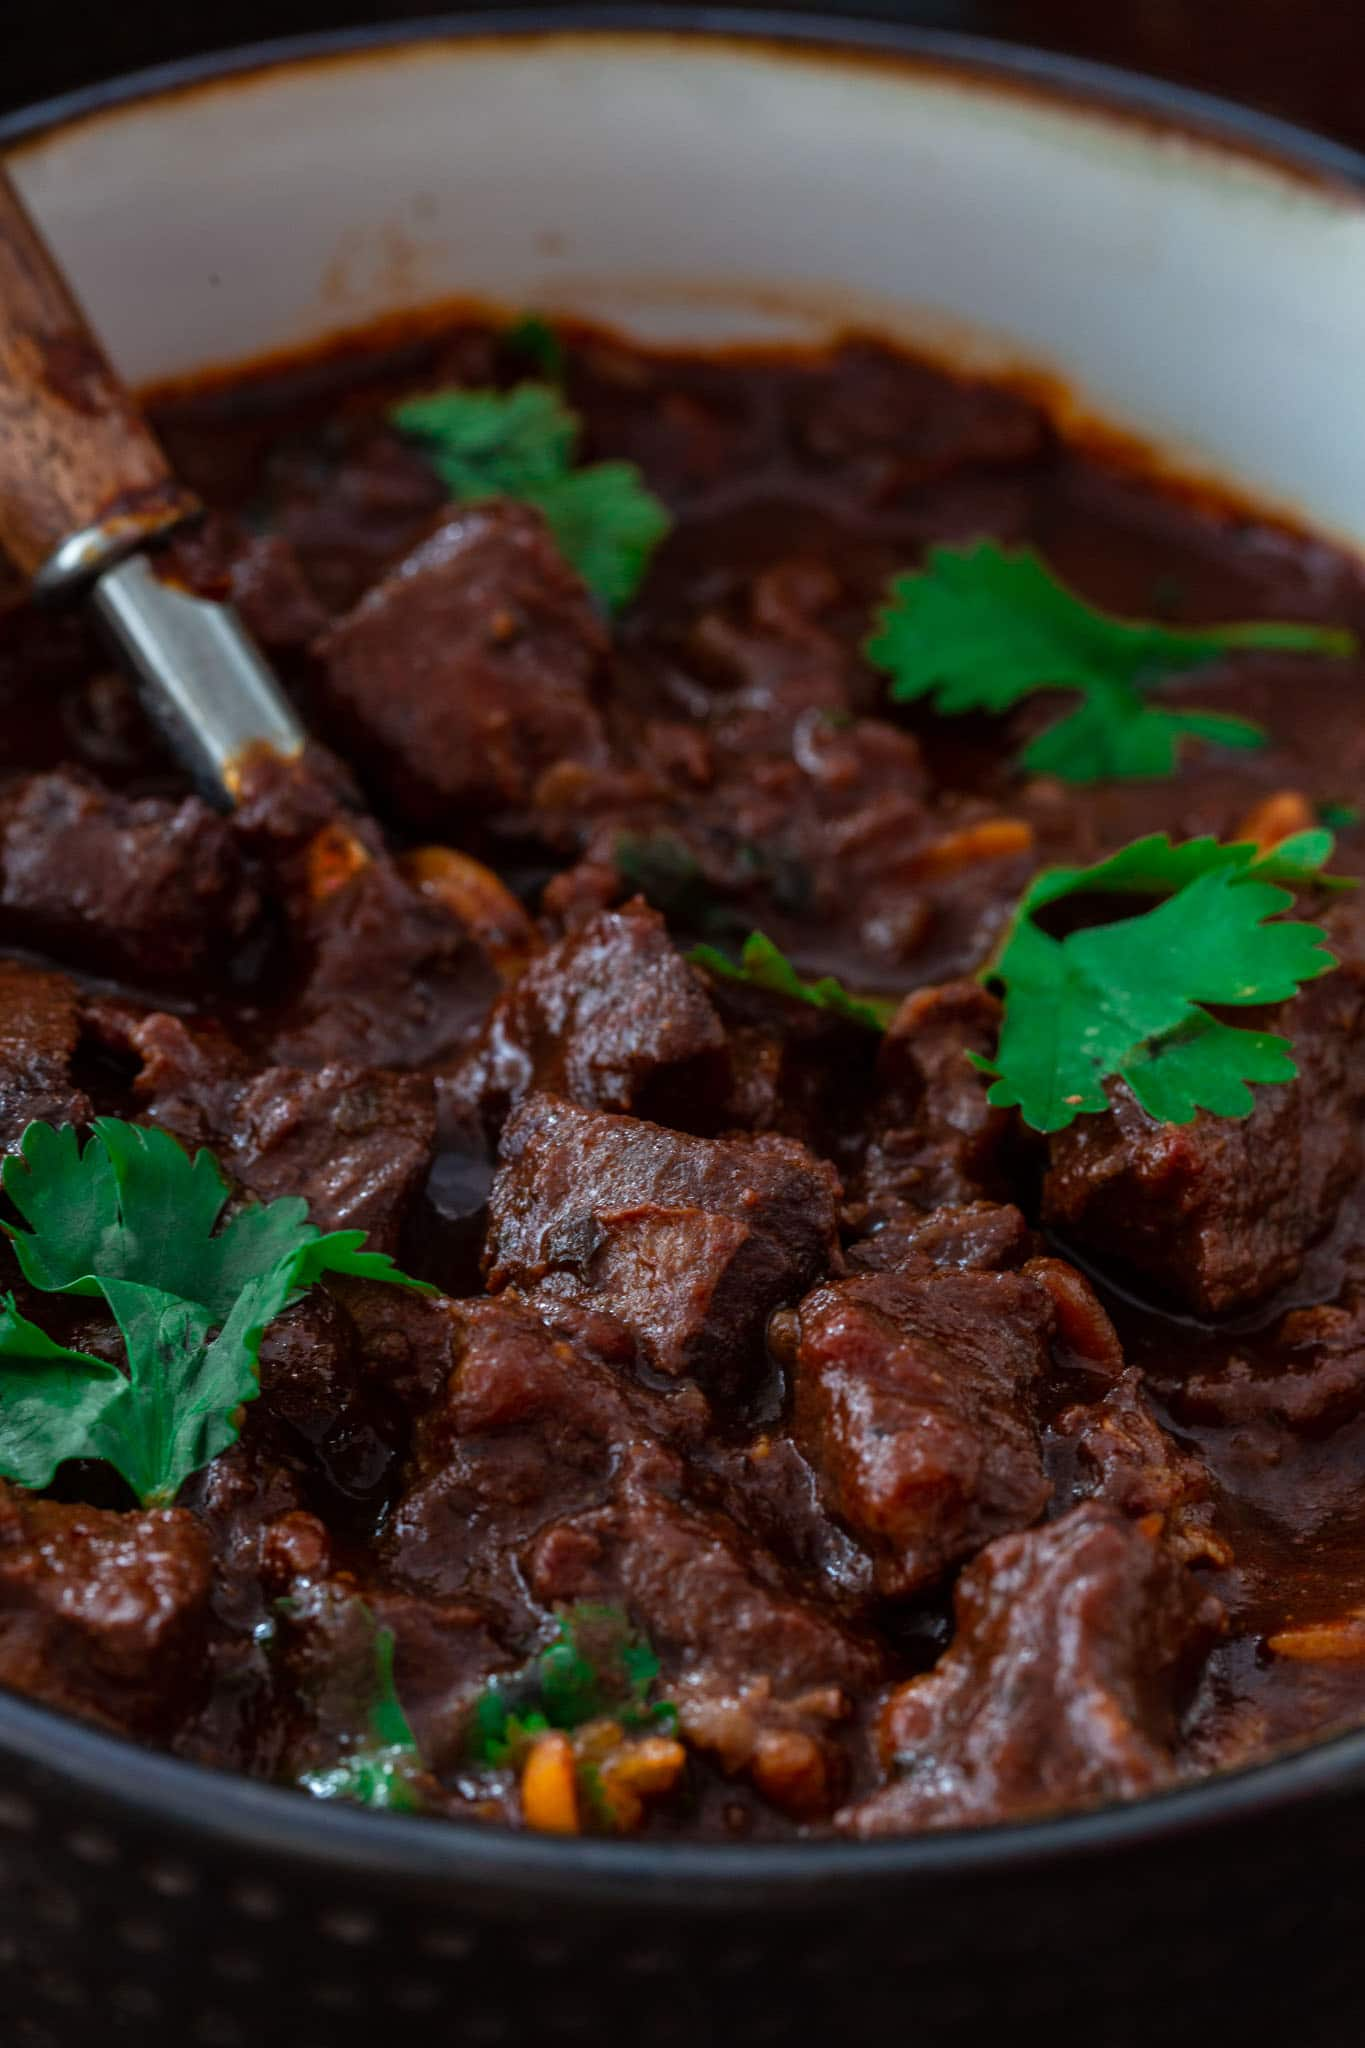 Rich and robust chocolate chili.